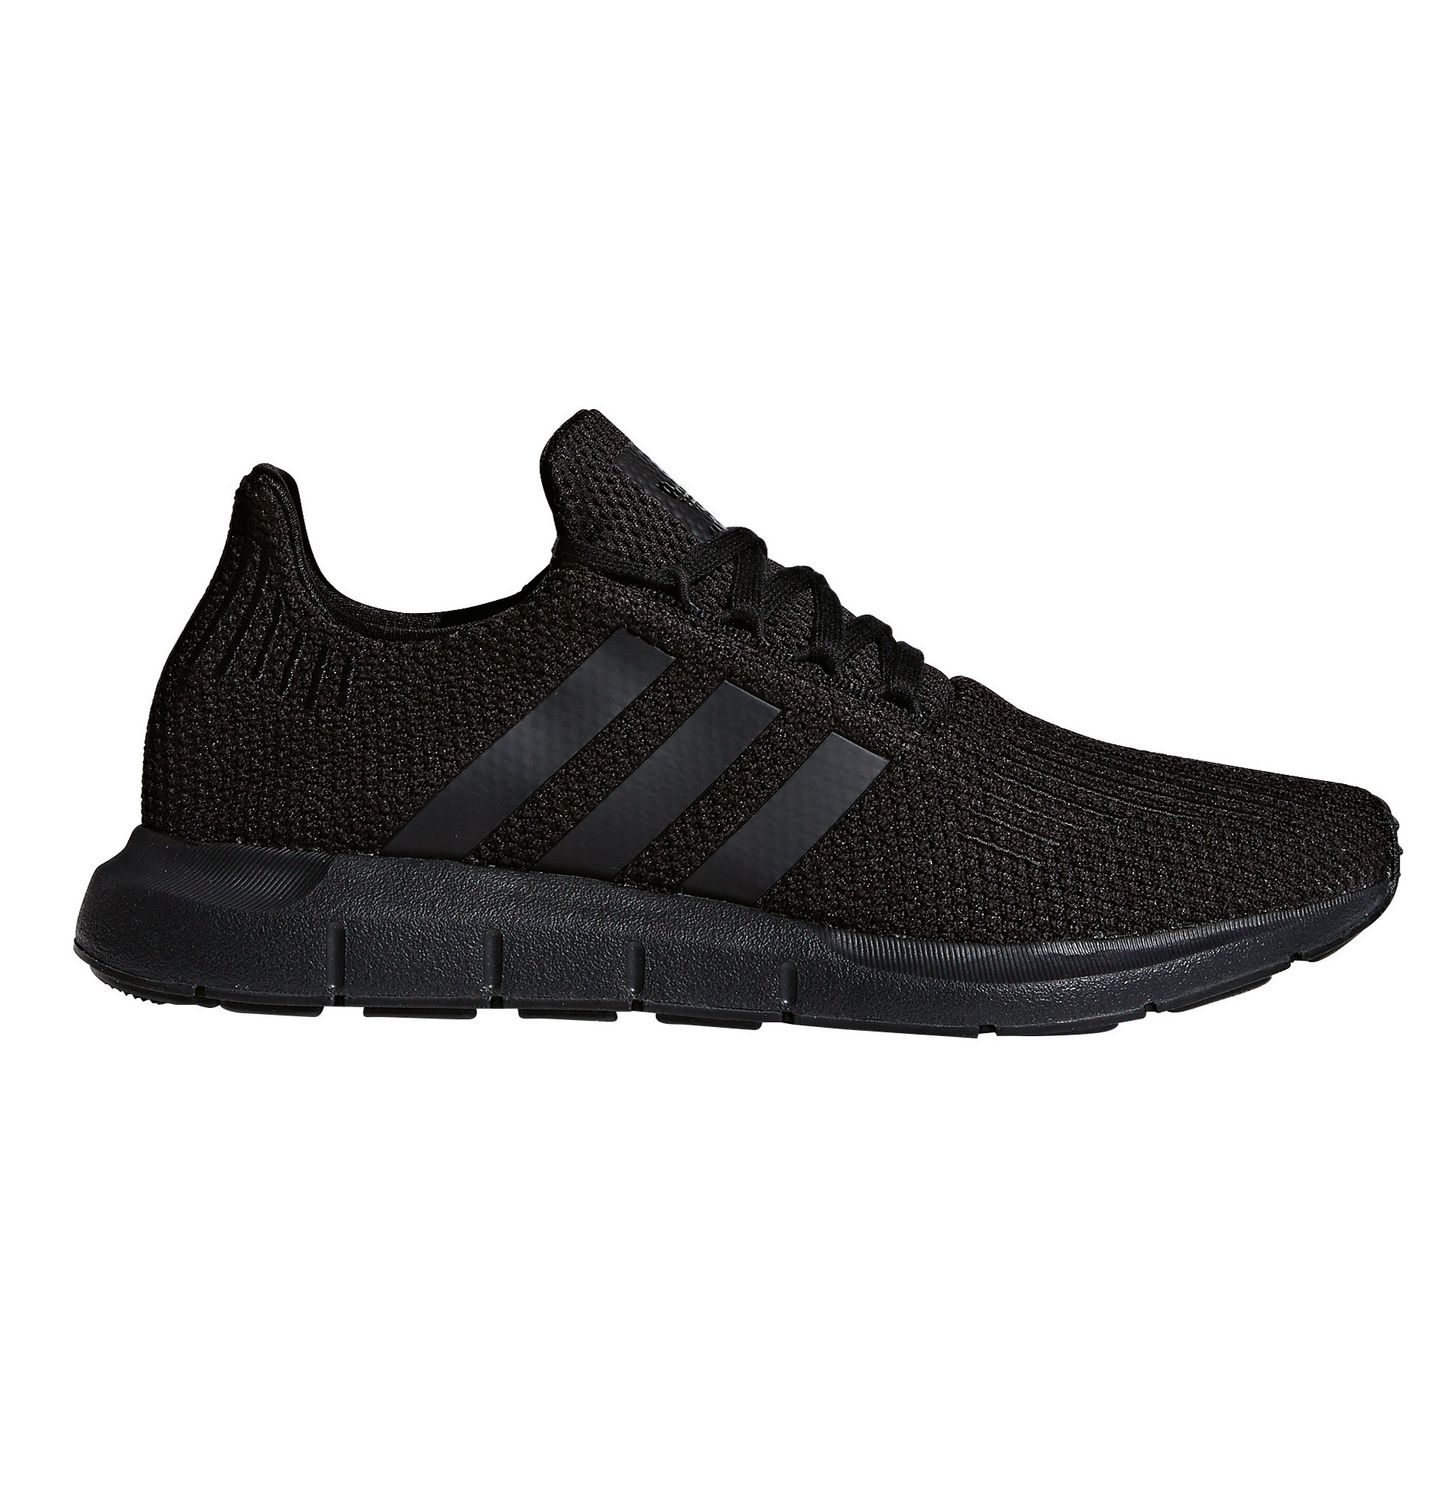 adidas Originals Swift Run Herren Sneaker schwarz AQ0863 2d6f1075cb